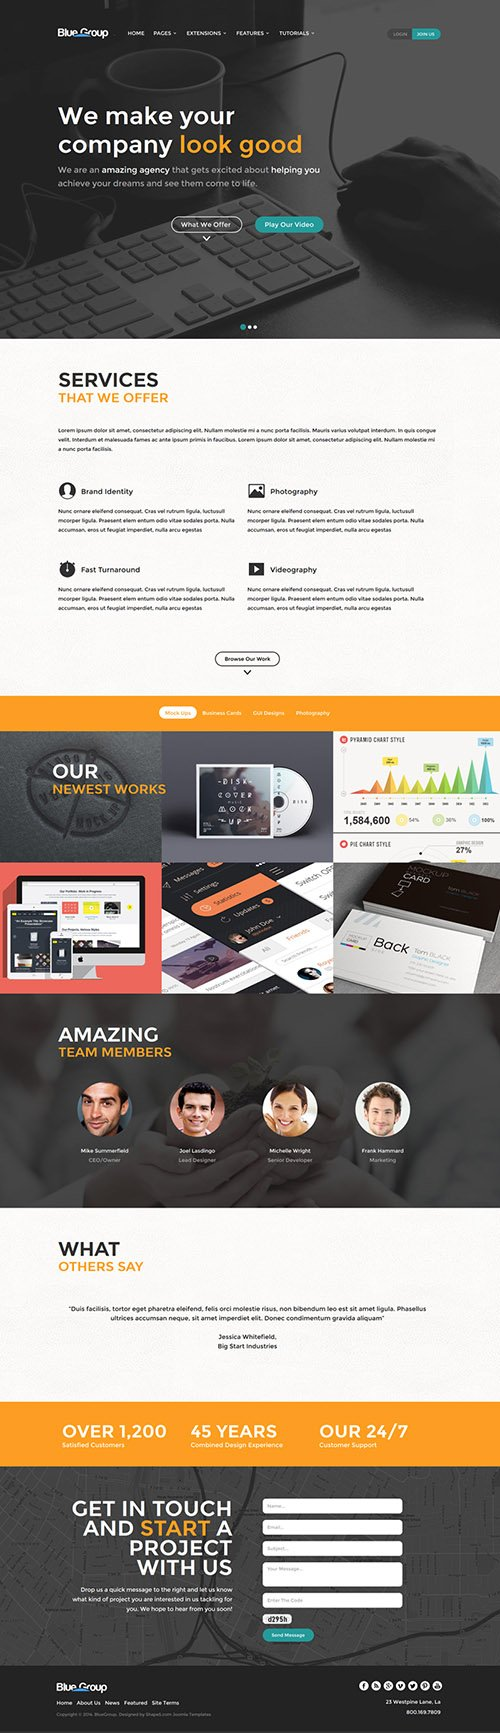 Shape5 - Blue Group v2.0 - WordPress Club Theme